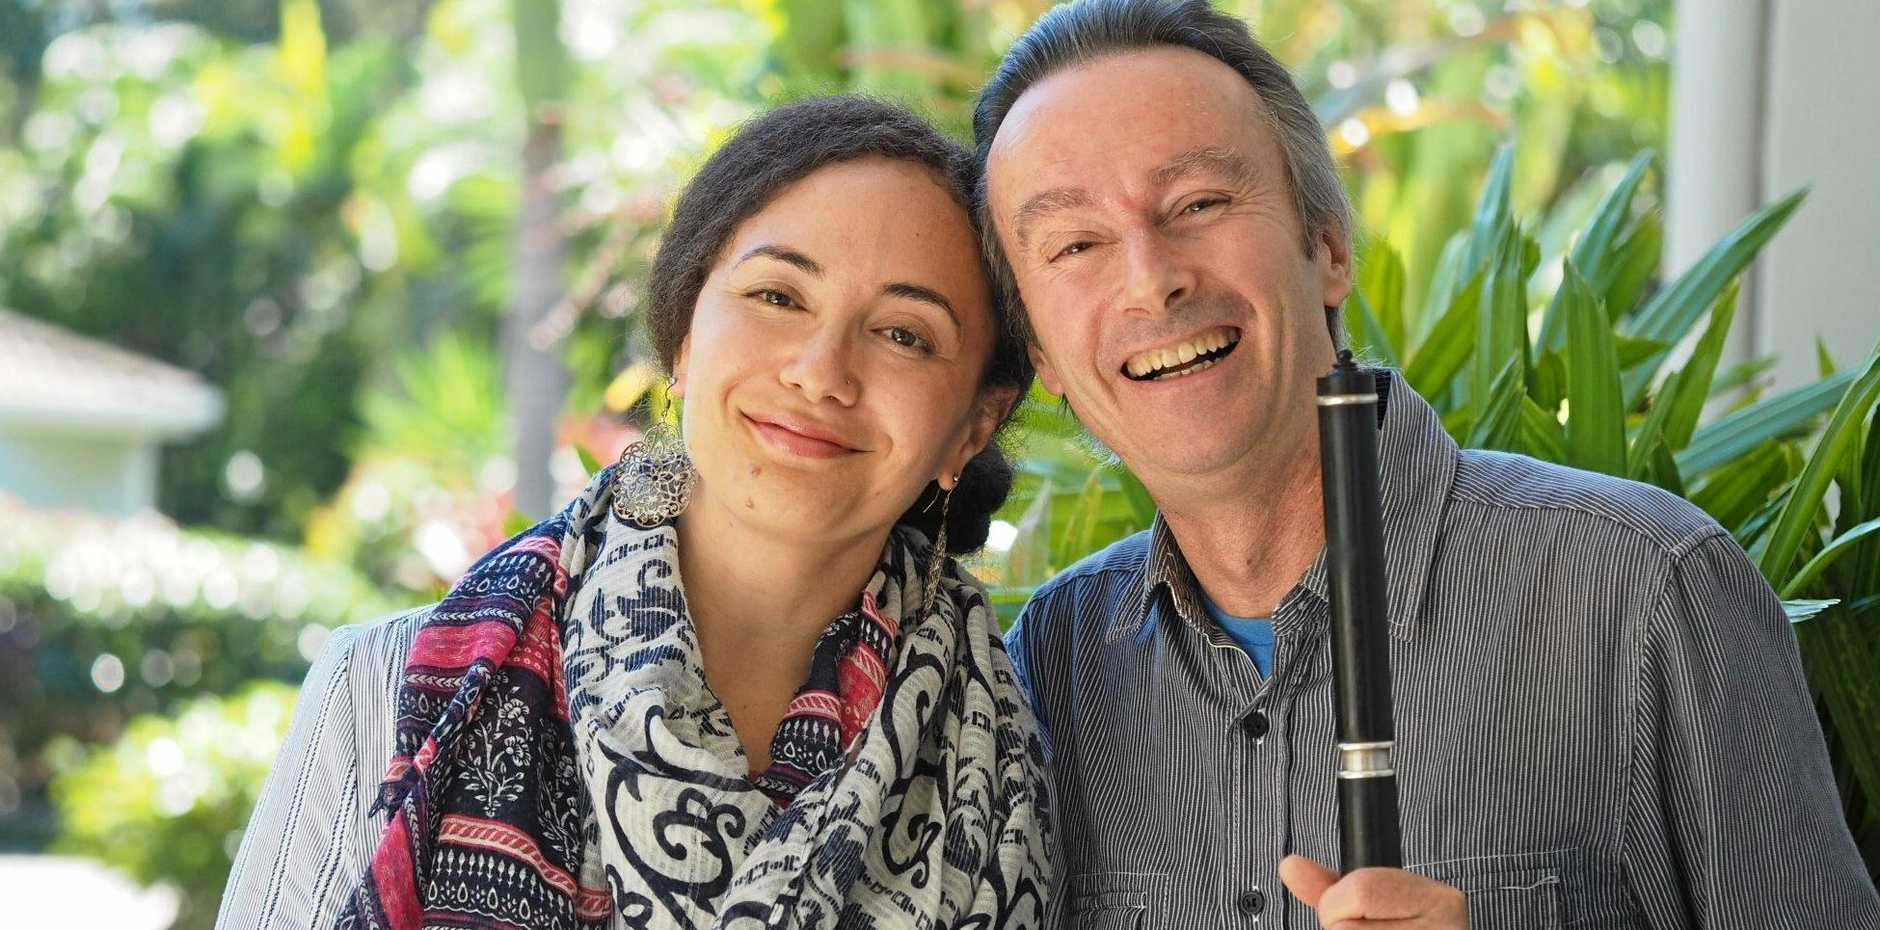 ENTERTAINING AFTERNOON: Mark Dunbar and his partner Carmen will be at the next Pleasant Sunday Afternoon concert.